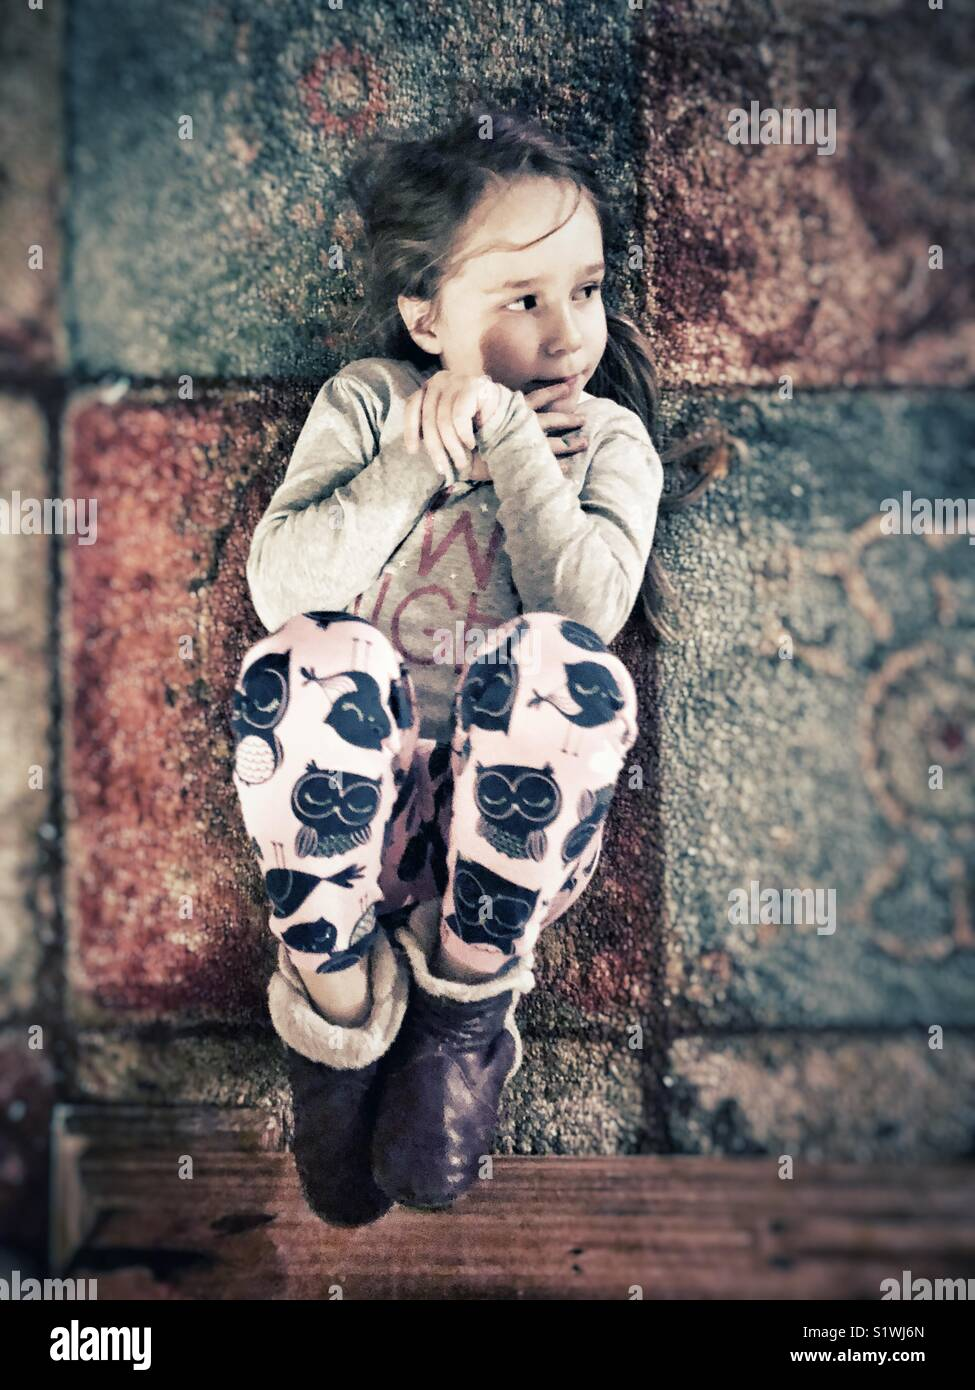 5 year old girl wearing pyjamas curled up in fetal position on carpet floor looking to the side - Stock Image